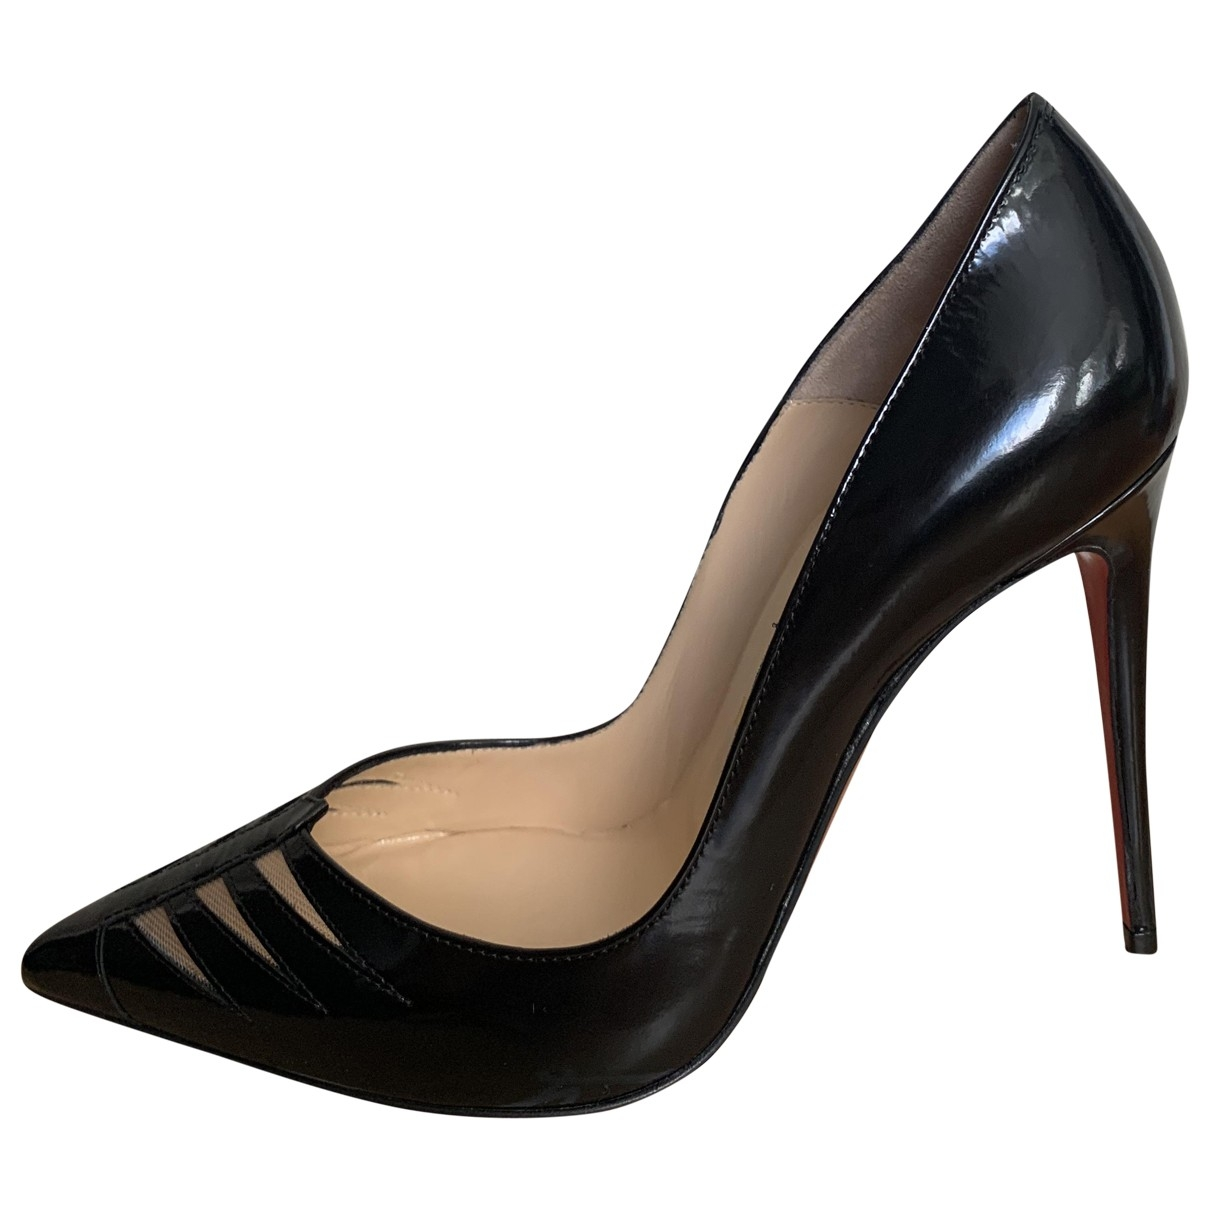 Christian Louboutin \N Black Patent leather Heels for Women 37 EU